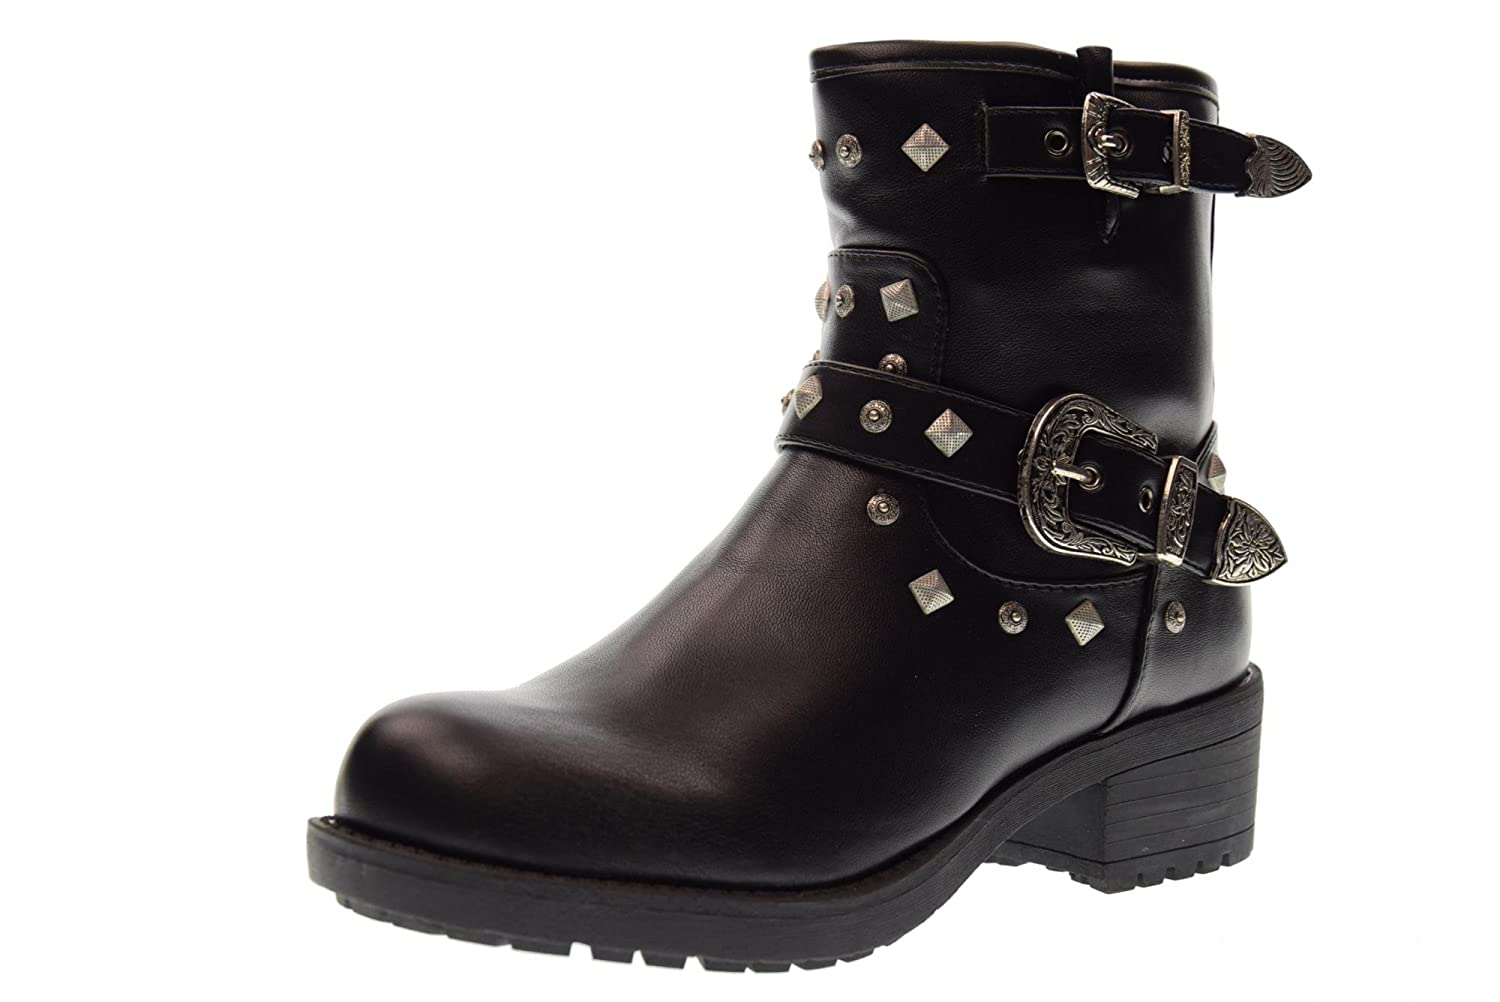 GOLD&GOLD chaussures bottes courtes JB723 NOIR taille 36 BLACK 5NYzsMwJ